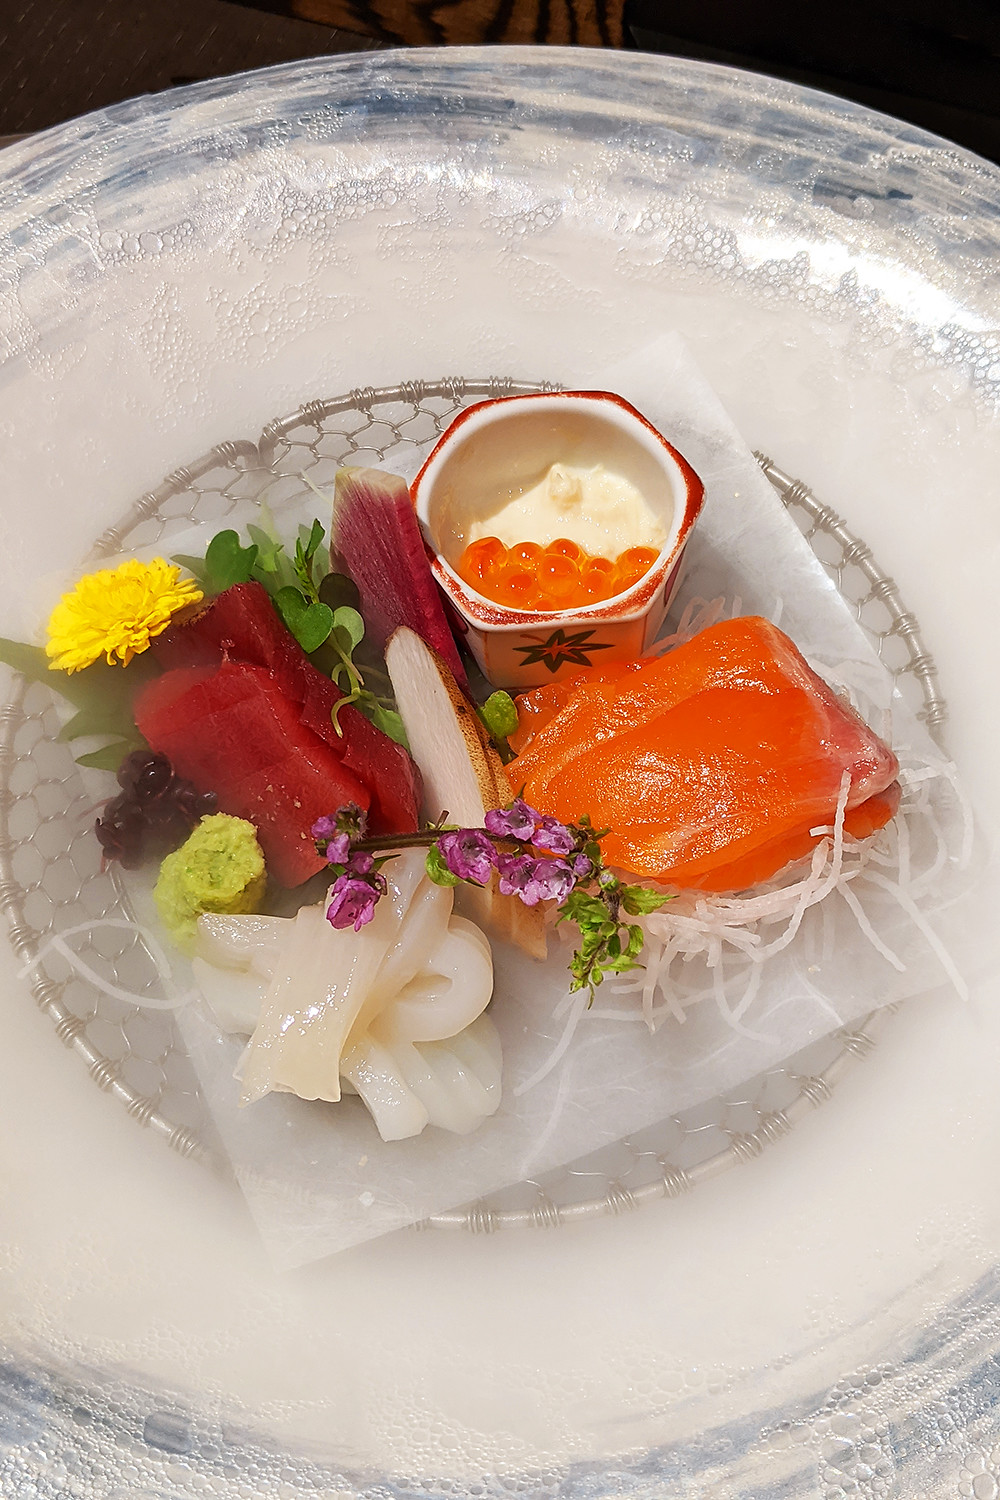 20hakone-tenyu-sashimi-japanese-food-travel